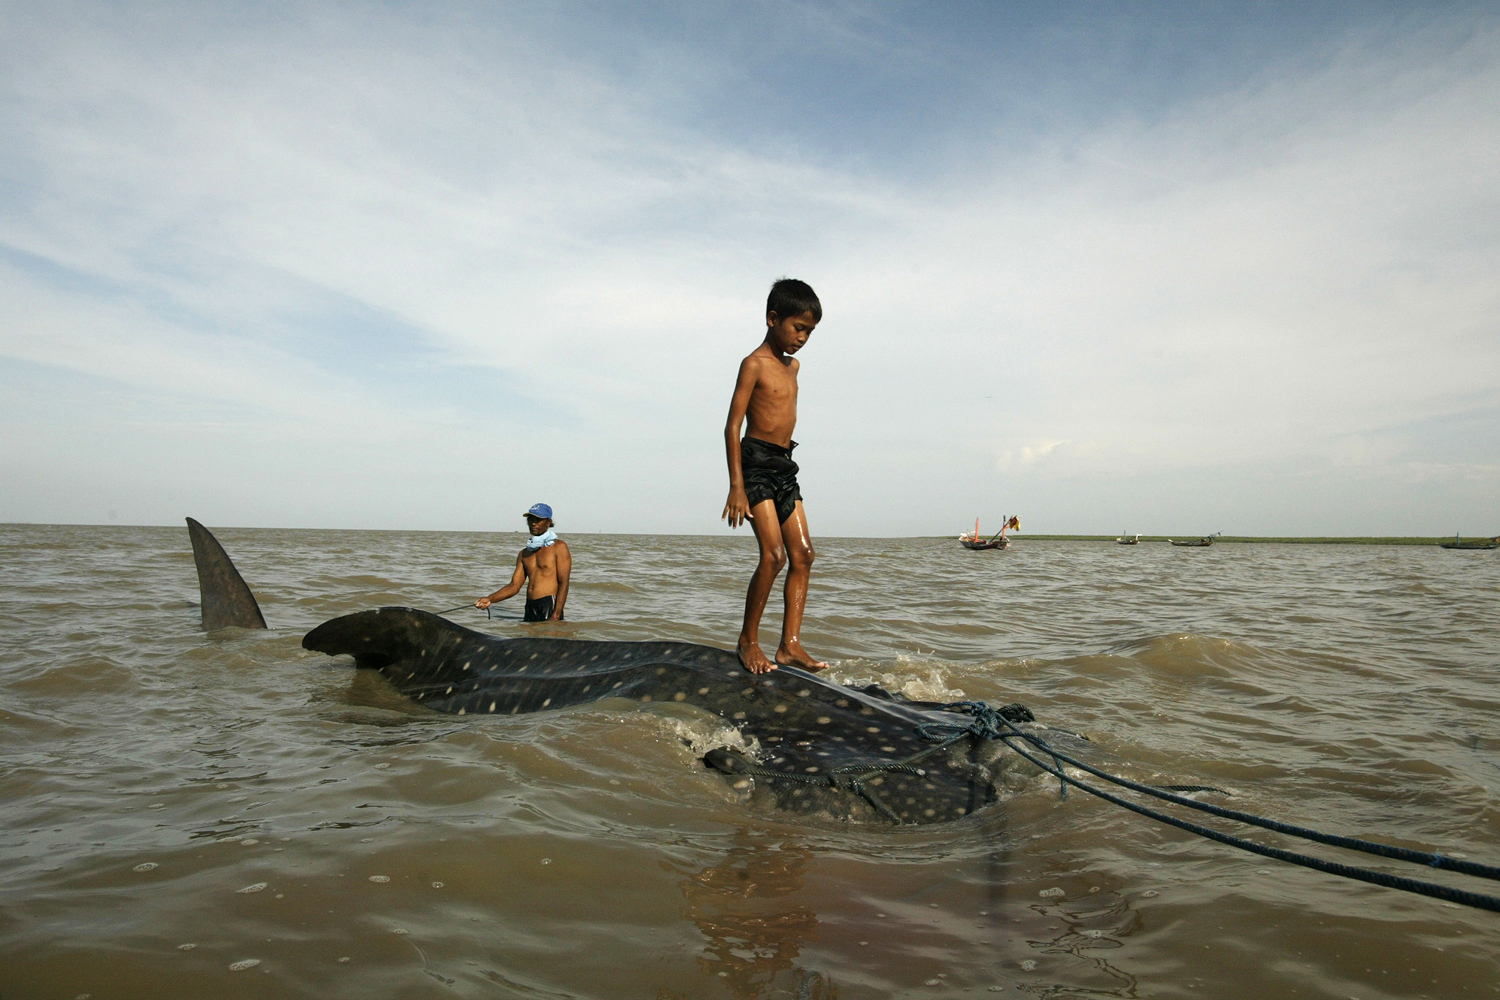 Oct. 22, 2013. A boy stands on a whale shark towed by fishermen along the coast of Surabaya in eastern Java island to be sold to prospective buyers after getting entangled in a fishing net.